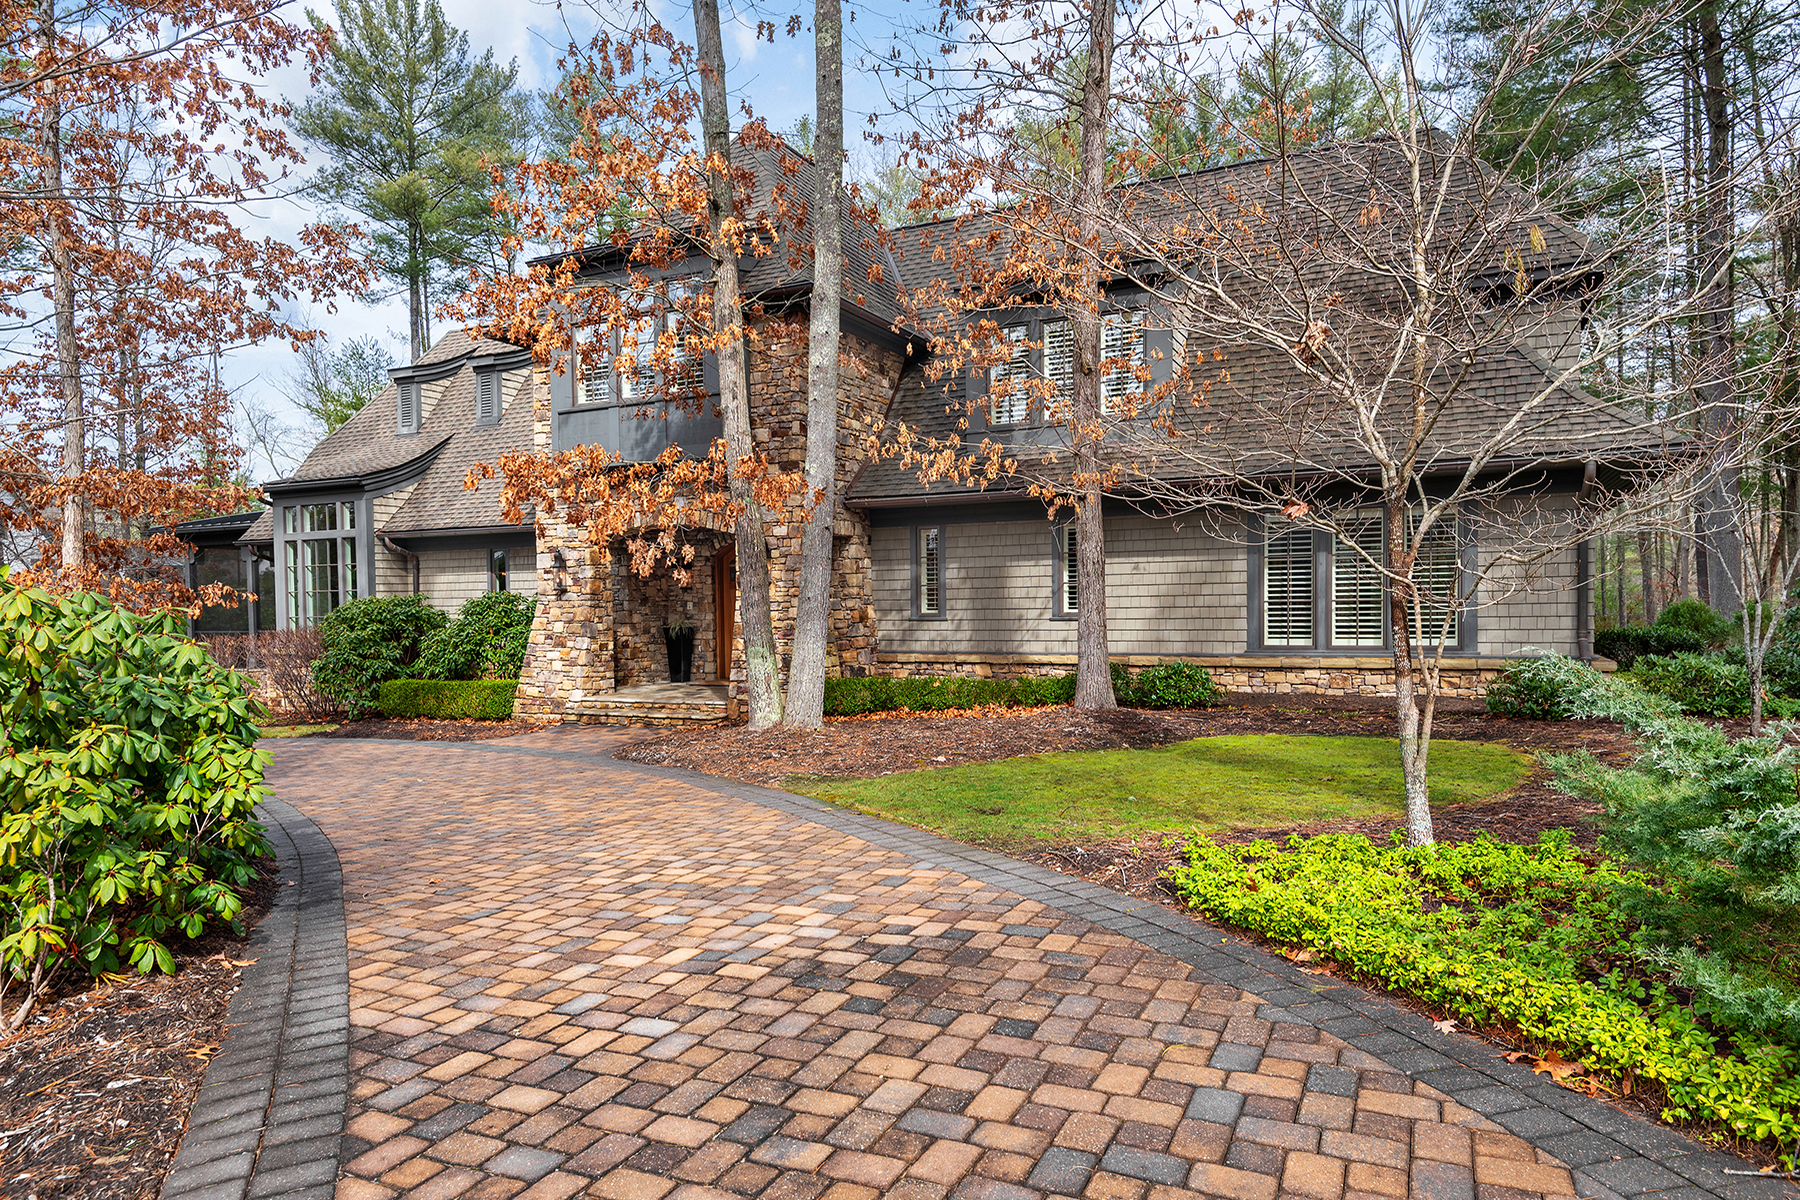 Single Family Homes for Sale at RAMBLE BILTMORE FOREST 175 Valley Springs Rd Asheville, North Carolina 28803 United States